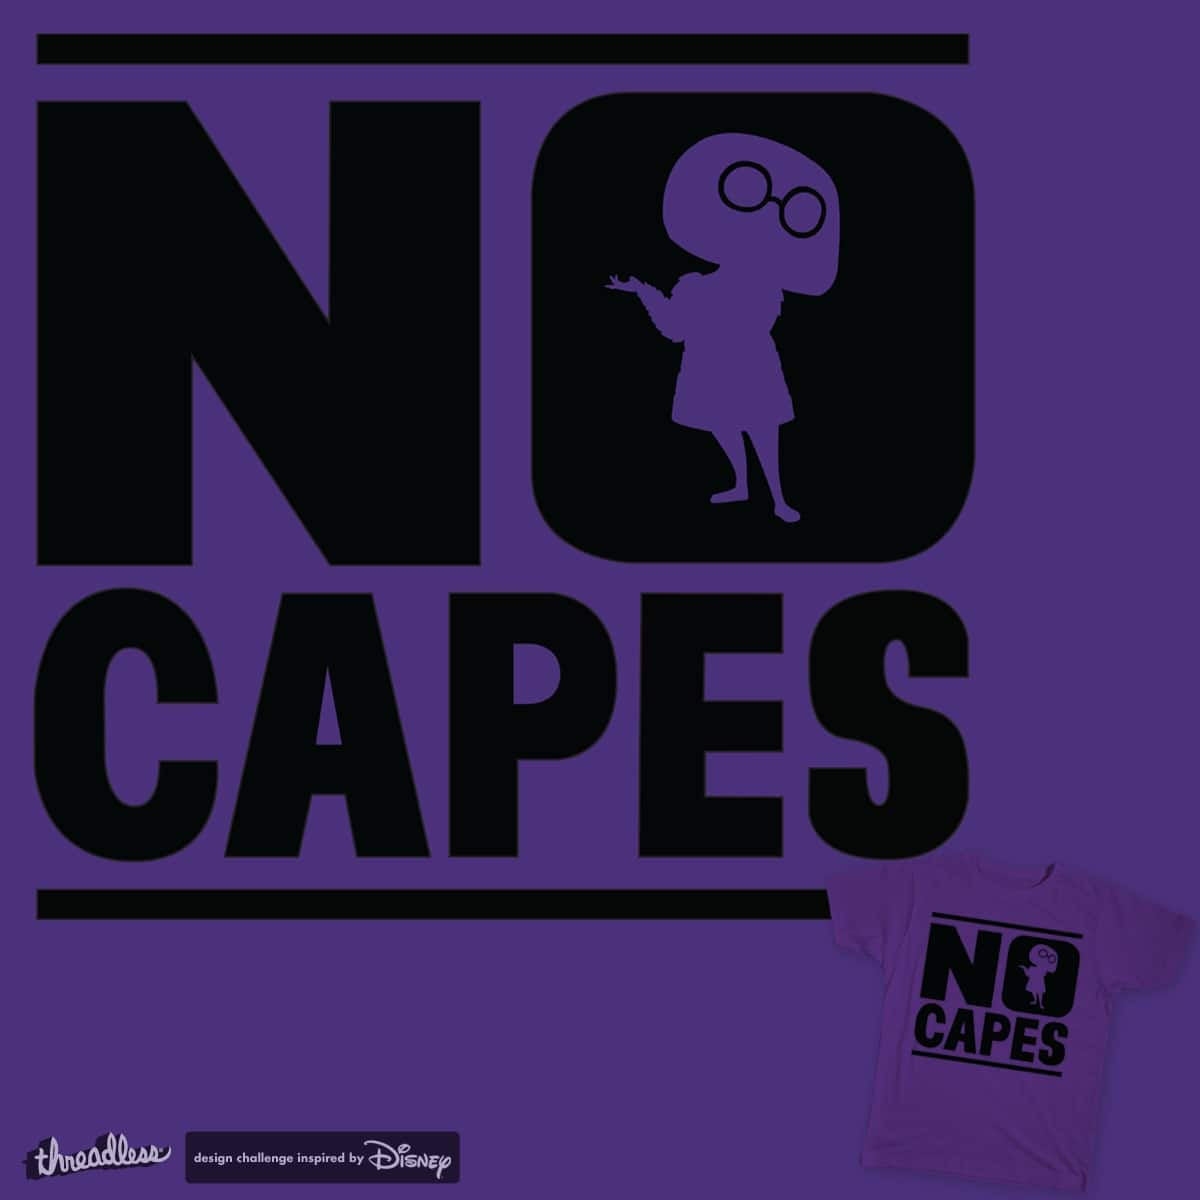 NO CAPES by Johnneh on Threadless